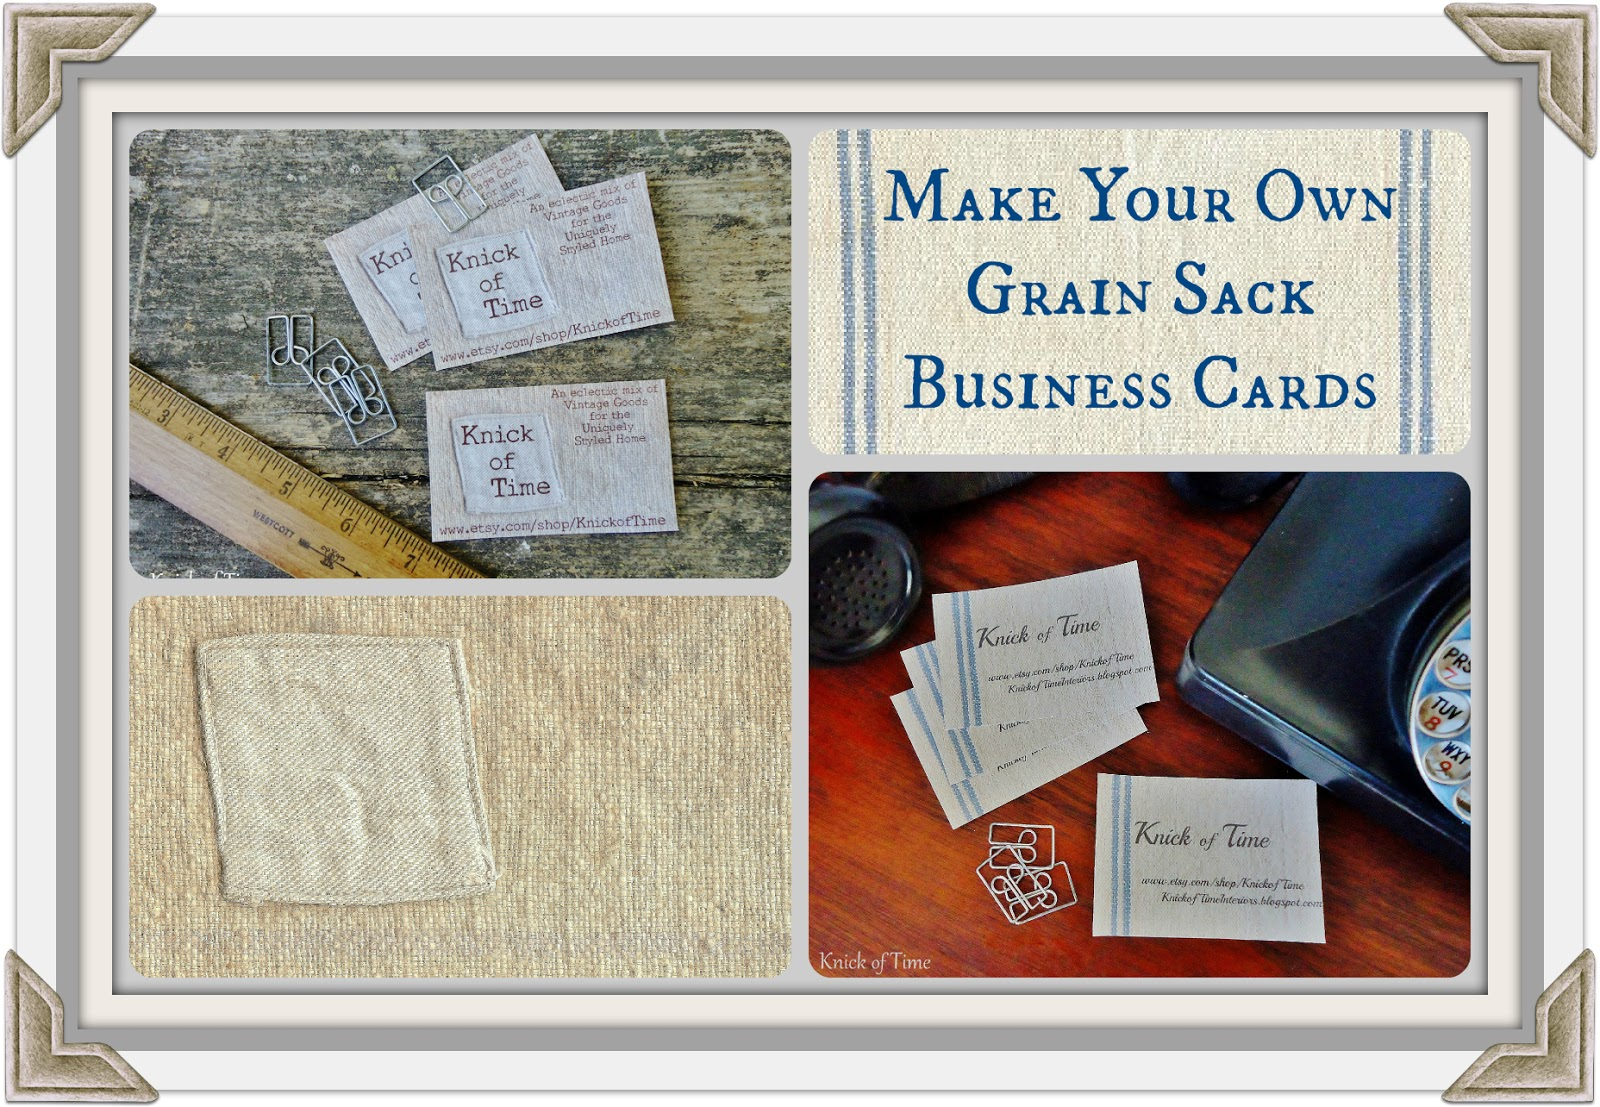 Grain Sack Business Cards & Price Tags - Knick of Time